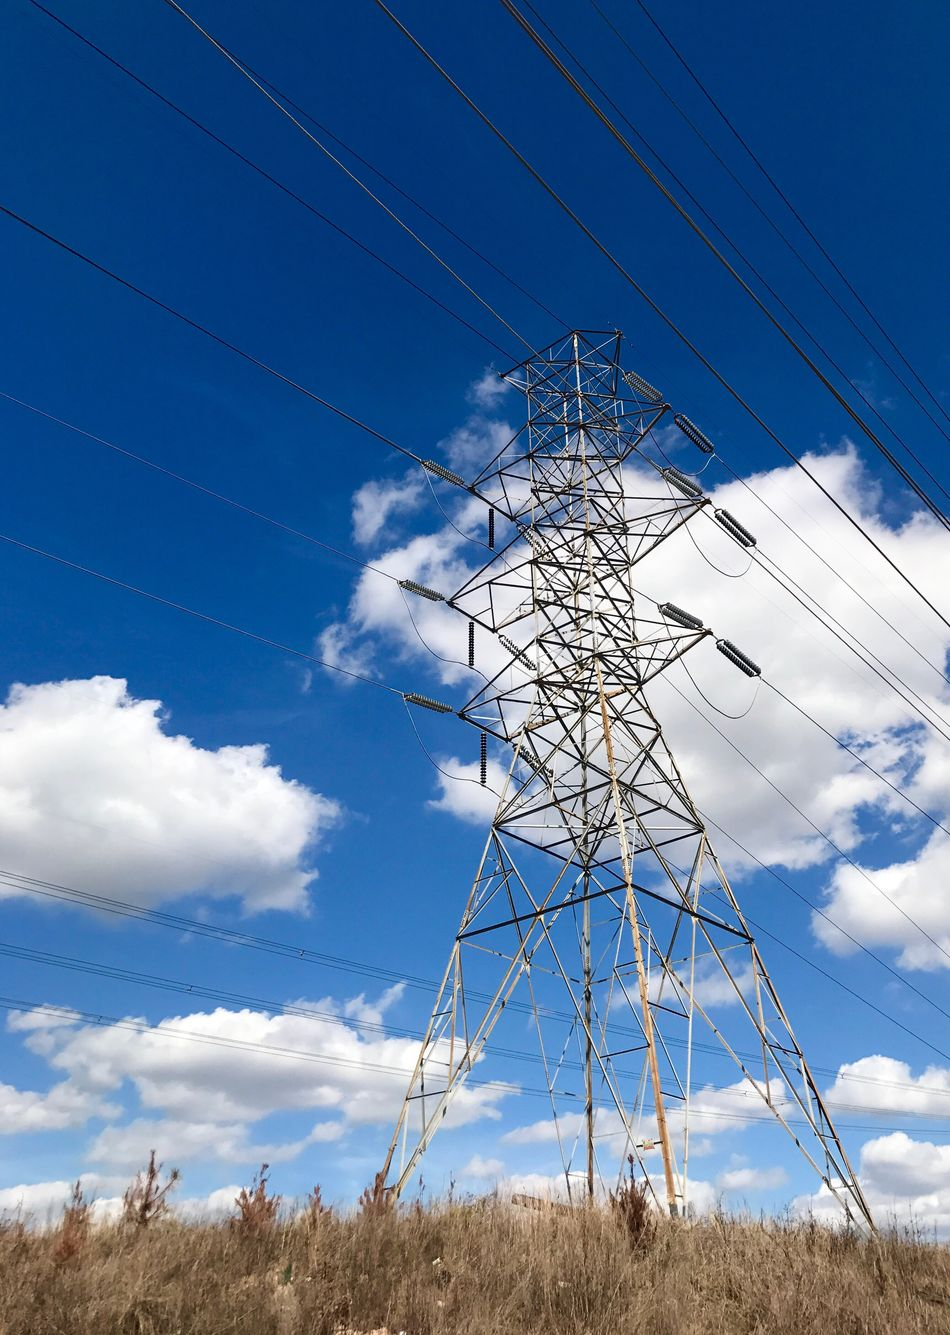 Cable Electricity  Electricity Pylon Power Supply Fuel And Power Generation Sky Power Line  Connection Low Angle View Field Cloud - Sky No People Outdoors Day Electricity Tower Technology Electricity Wires Electric Wire Electric Tower